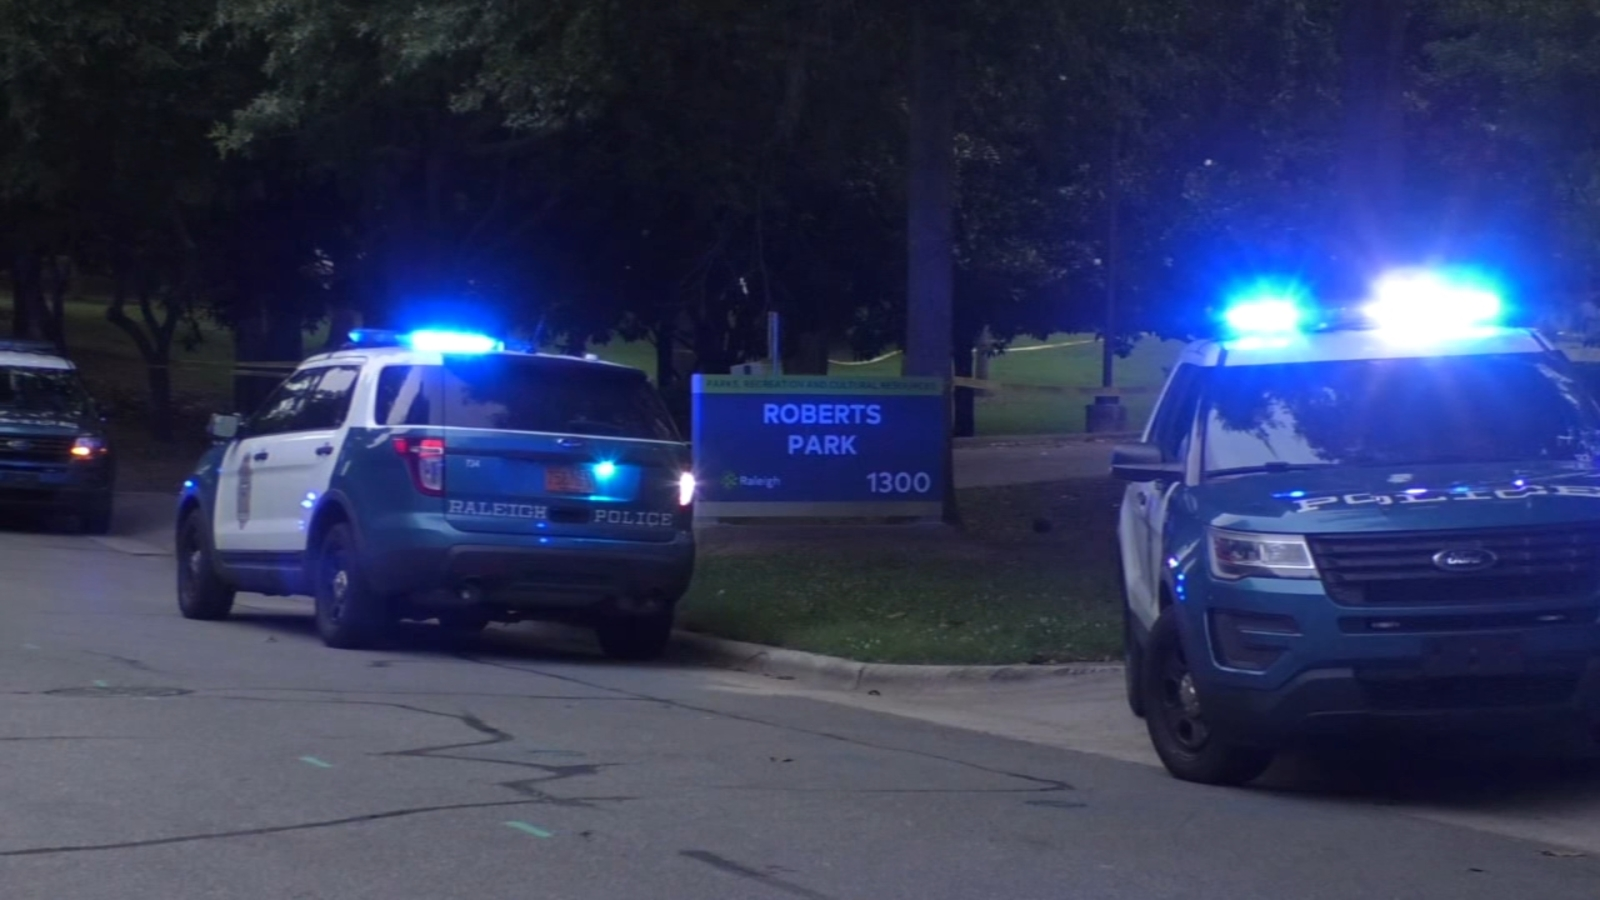 EMS workers shot dead at the Juneteenth event in Raleigh